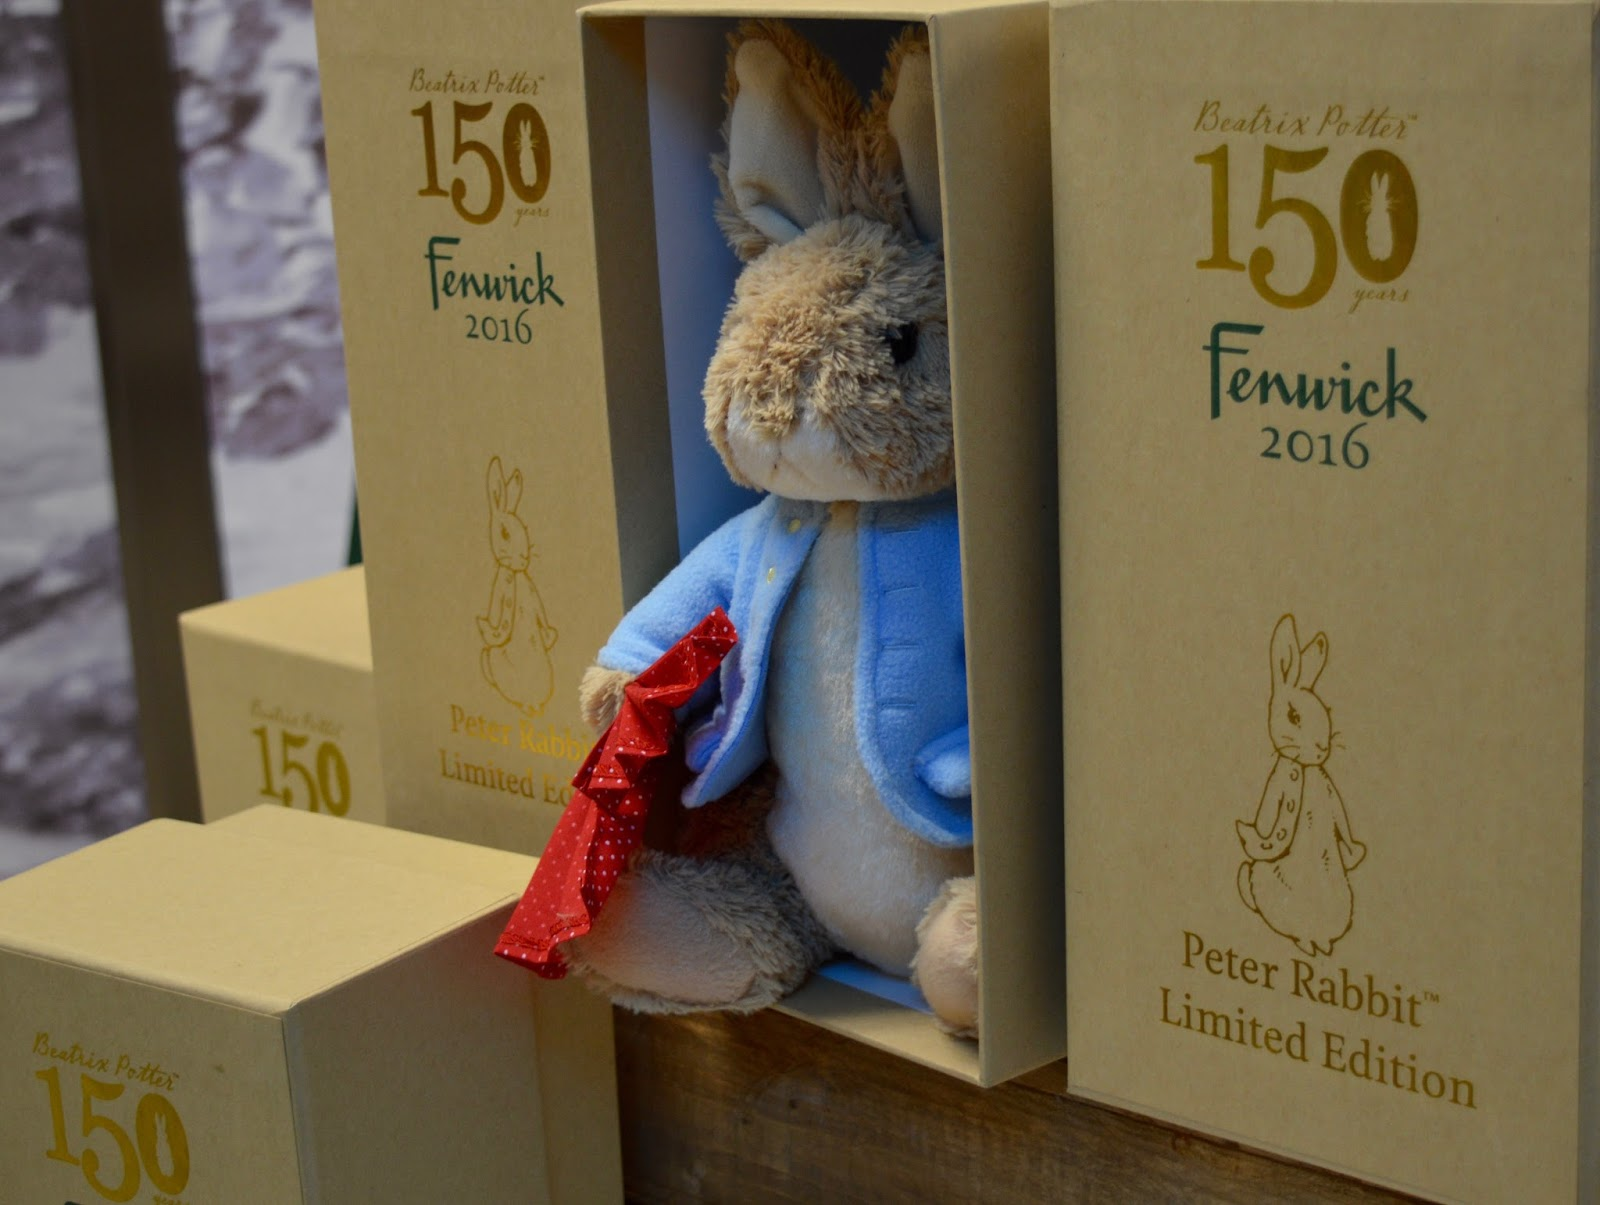 Fenwick's Window Newcastle 2016. Beatrix Potter / Peter Rabbit theme - Fenwick Christmas department level 2 - fenwick peter rabbit soft toy